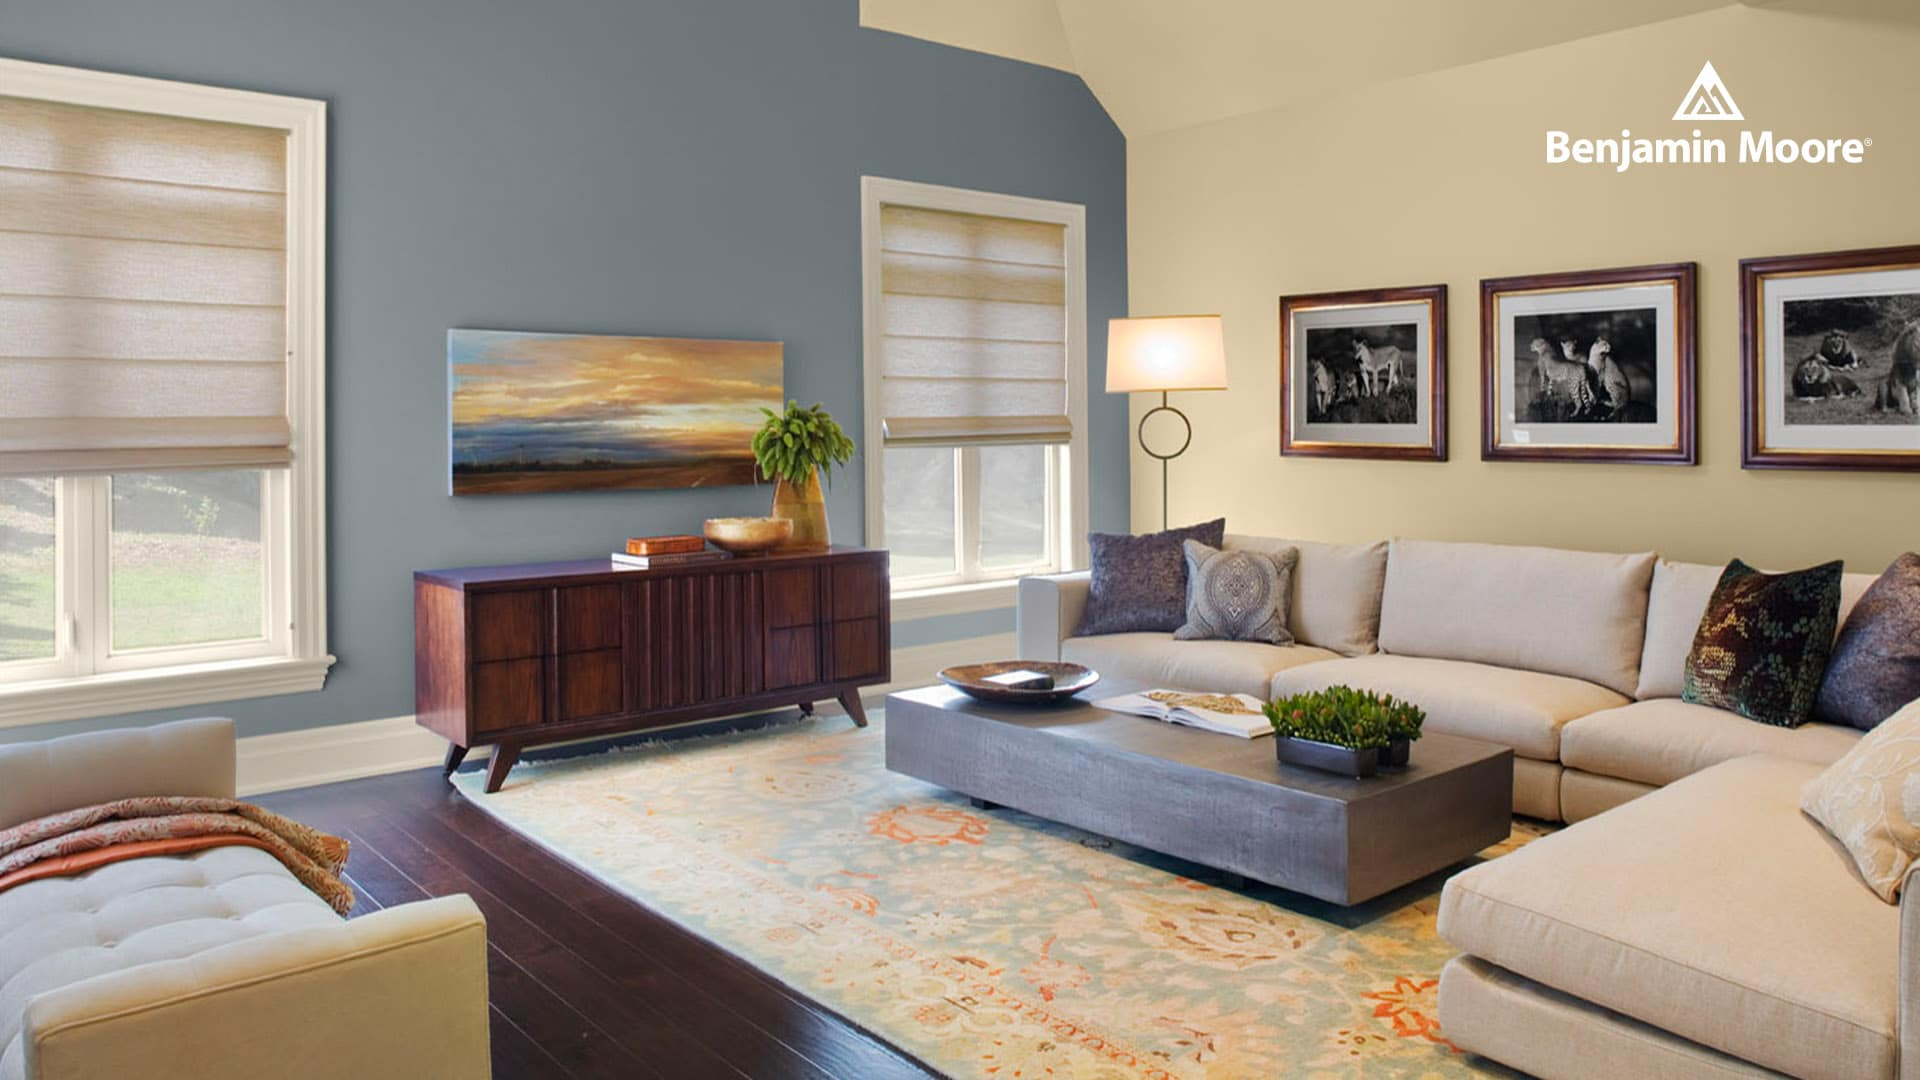 Benjamin Moore - Janovic Feature Wall in Living Room